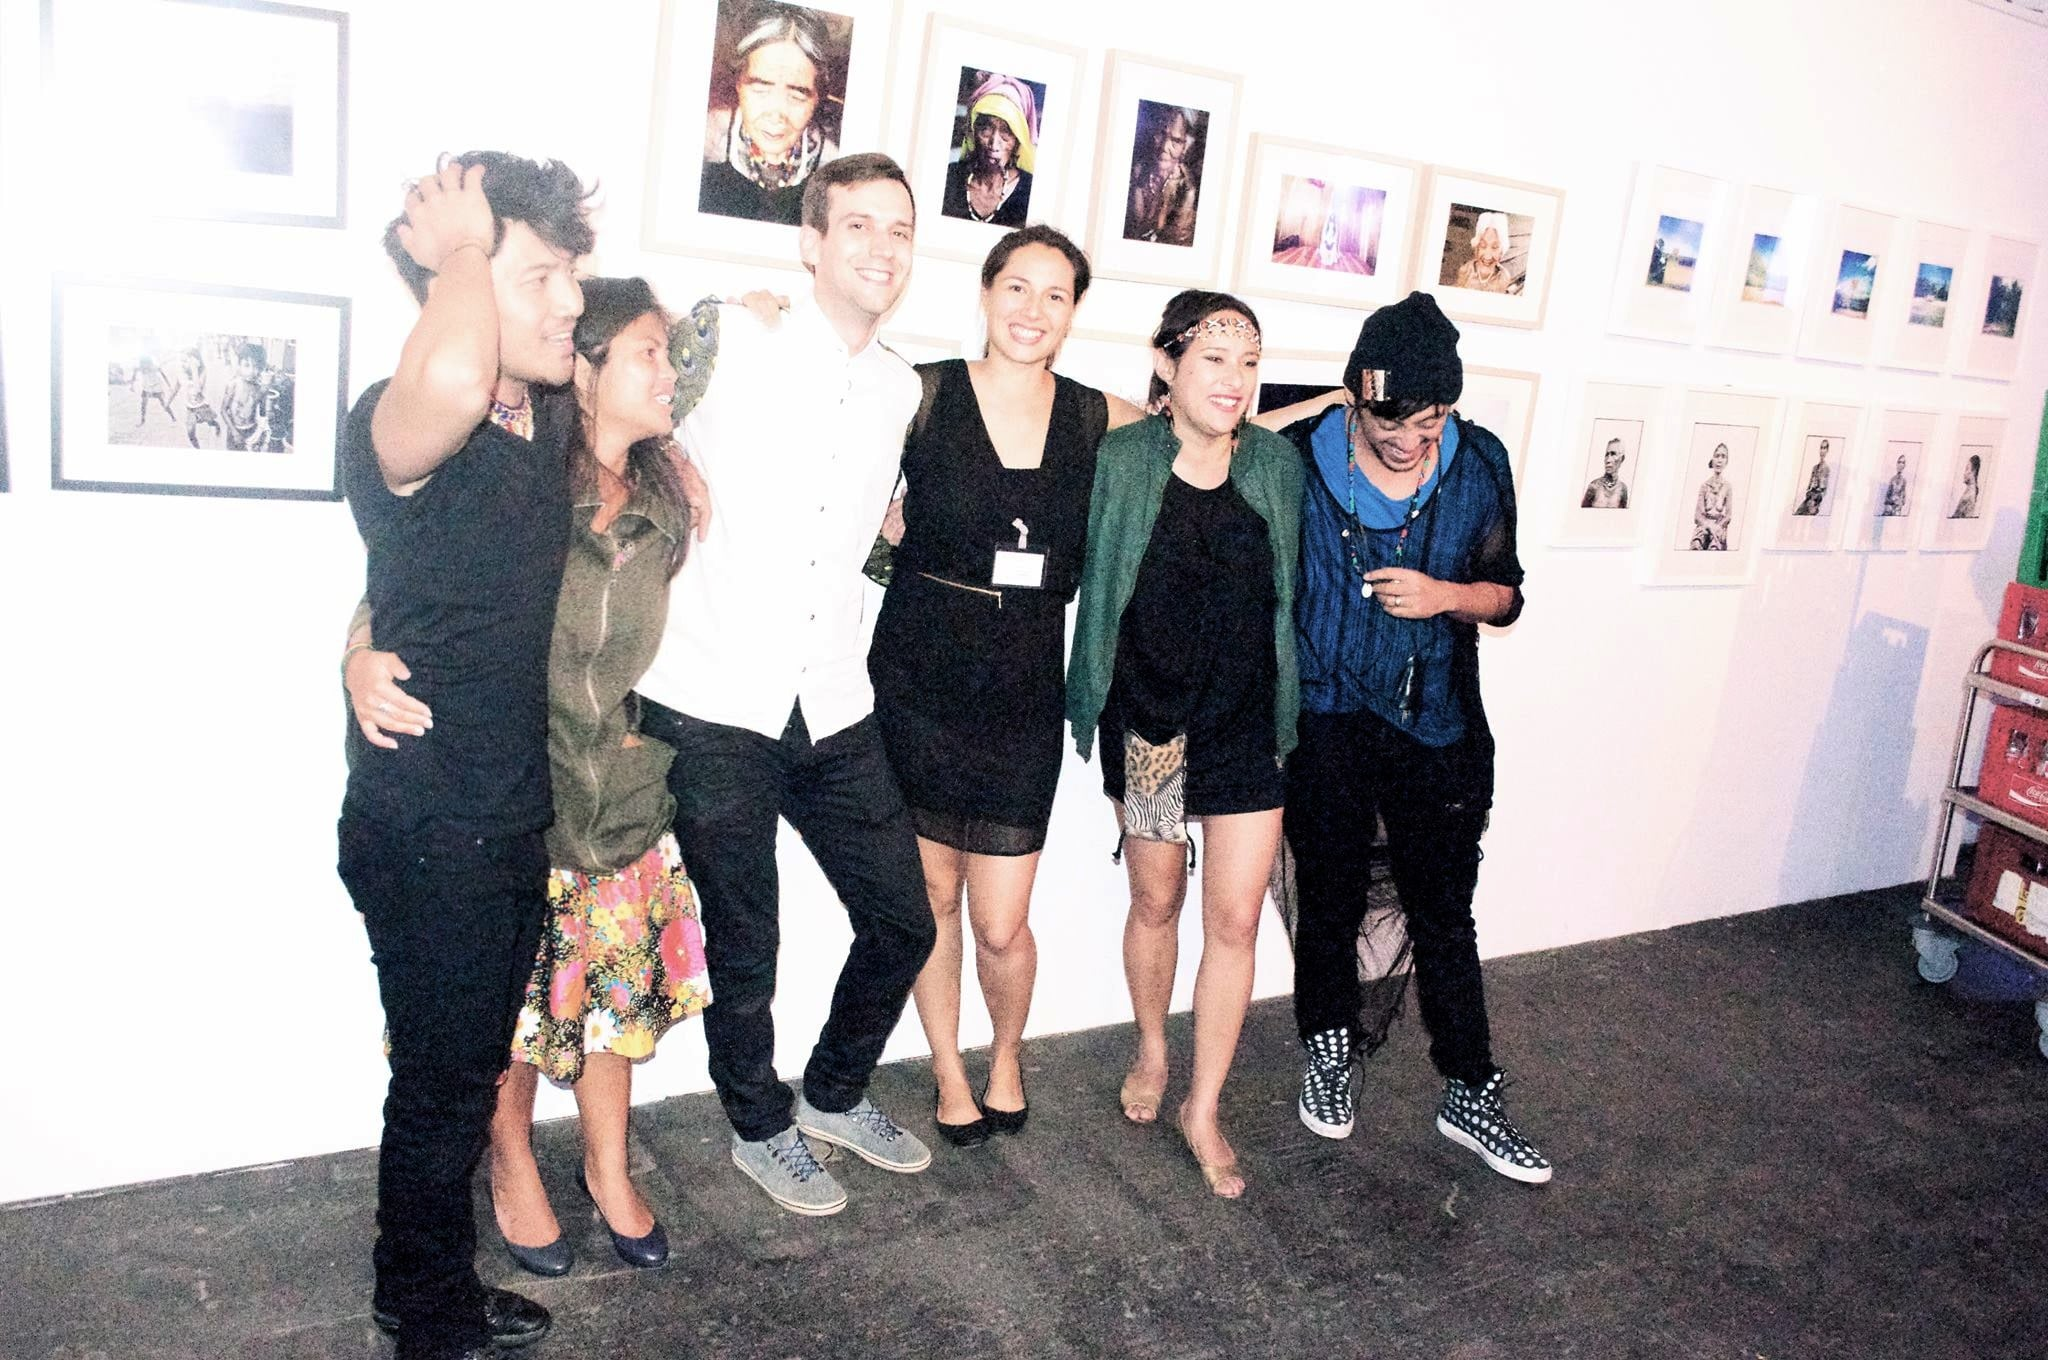 P-Noise collective Andy Roda, Cindy Daniels, Daniel Alonso Van Camp, Jacqeline Hansen, Lisa Marker and Ray Roa